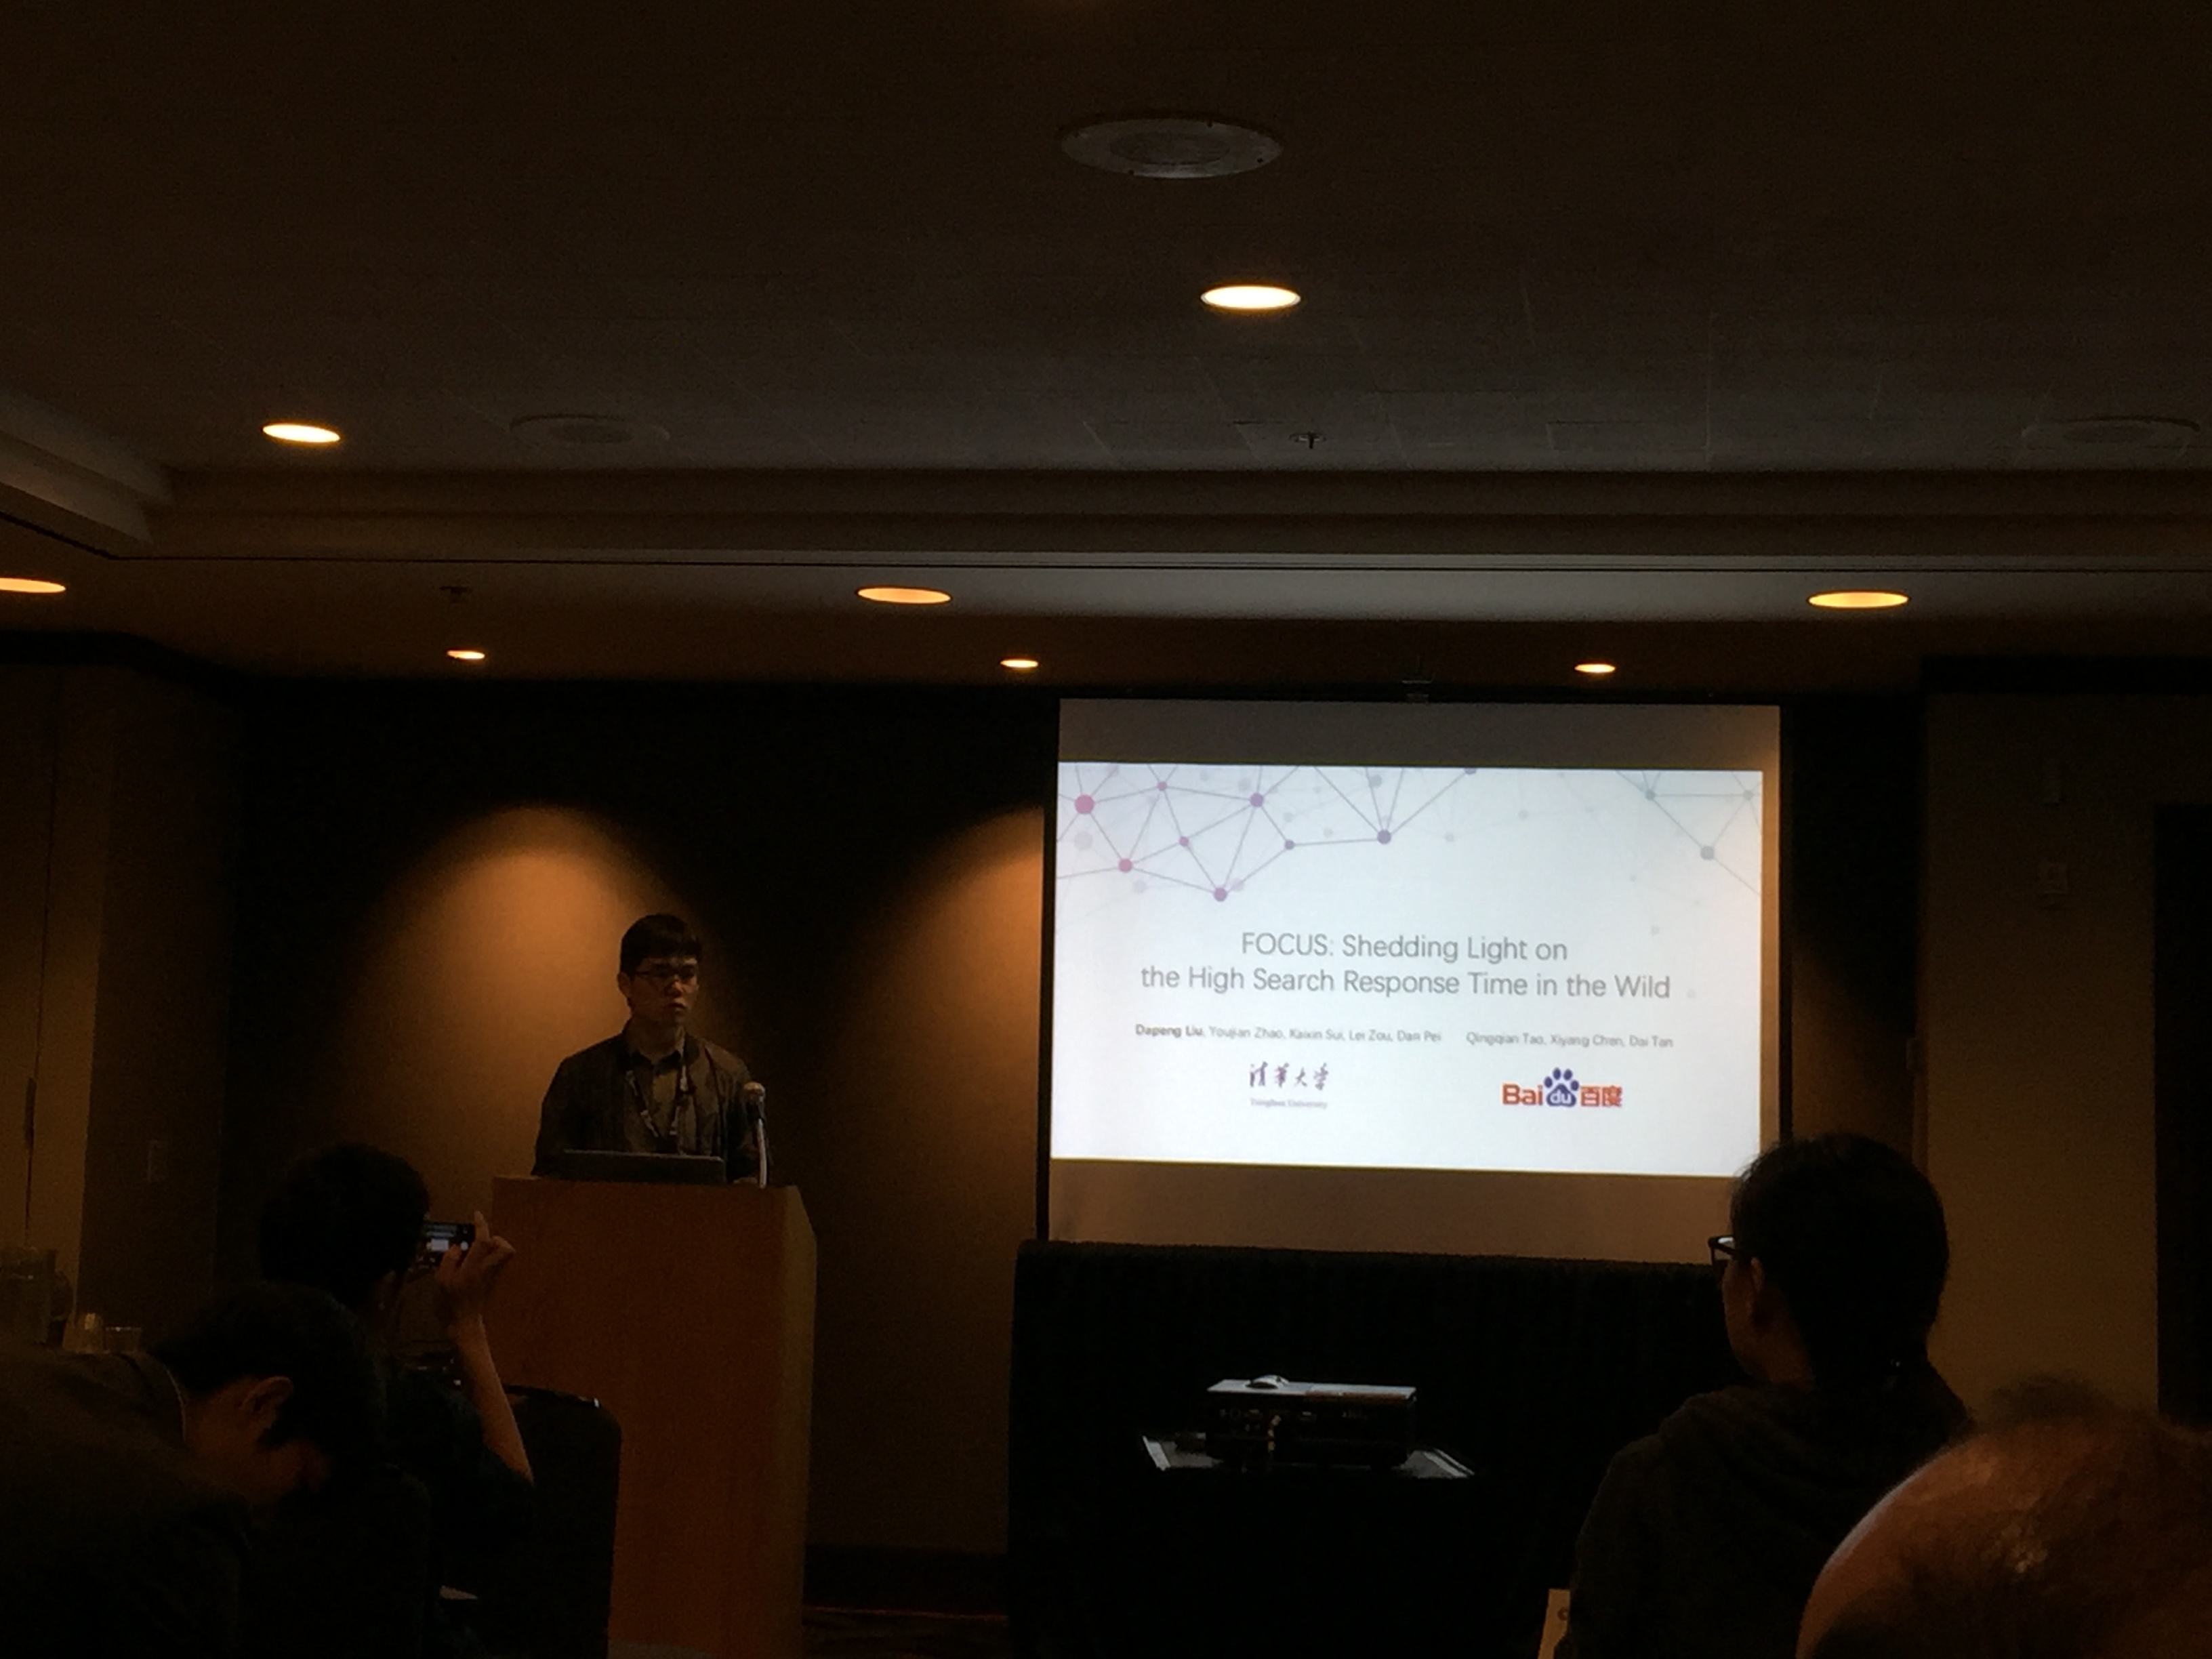 Dapeng delivered his talk on FOCUS at INFOCOM 2016 in San Francisco